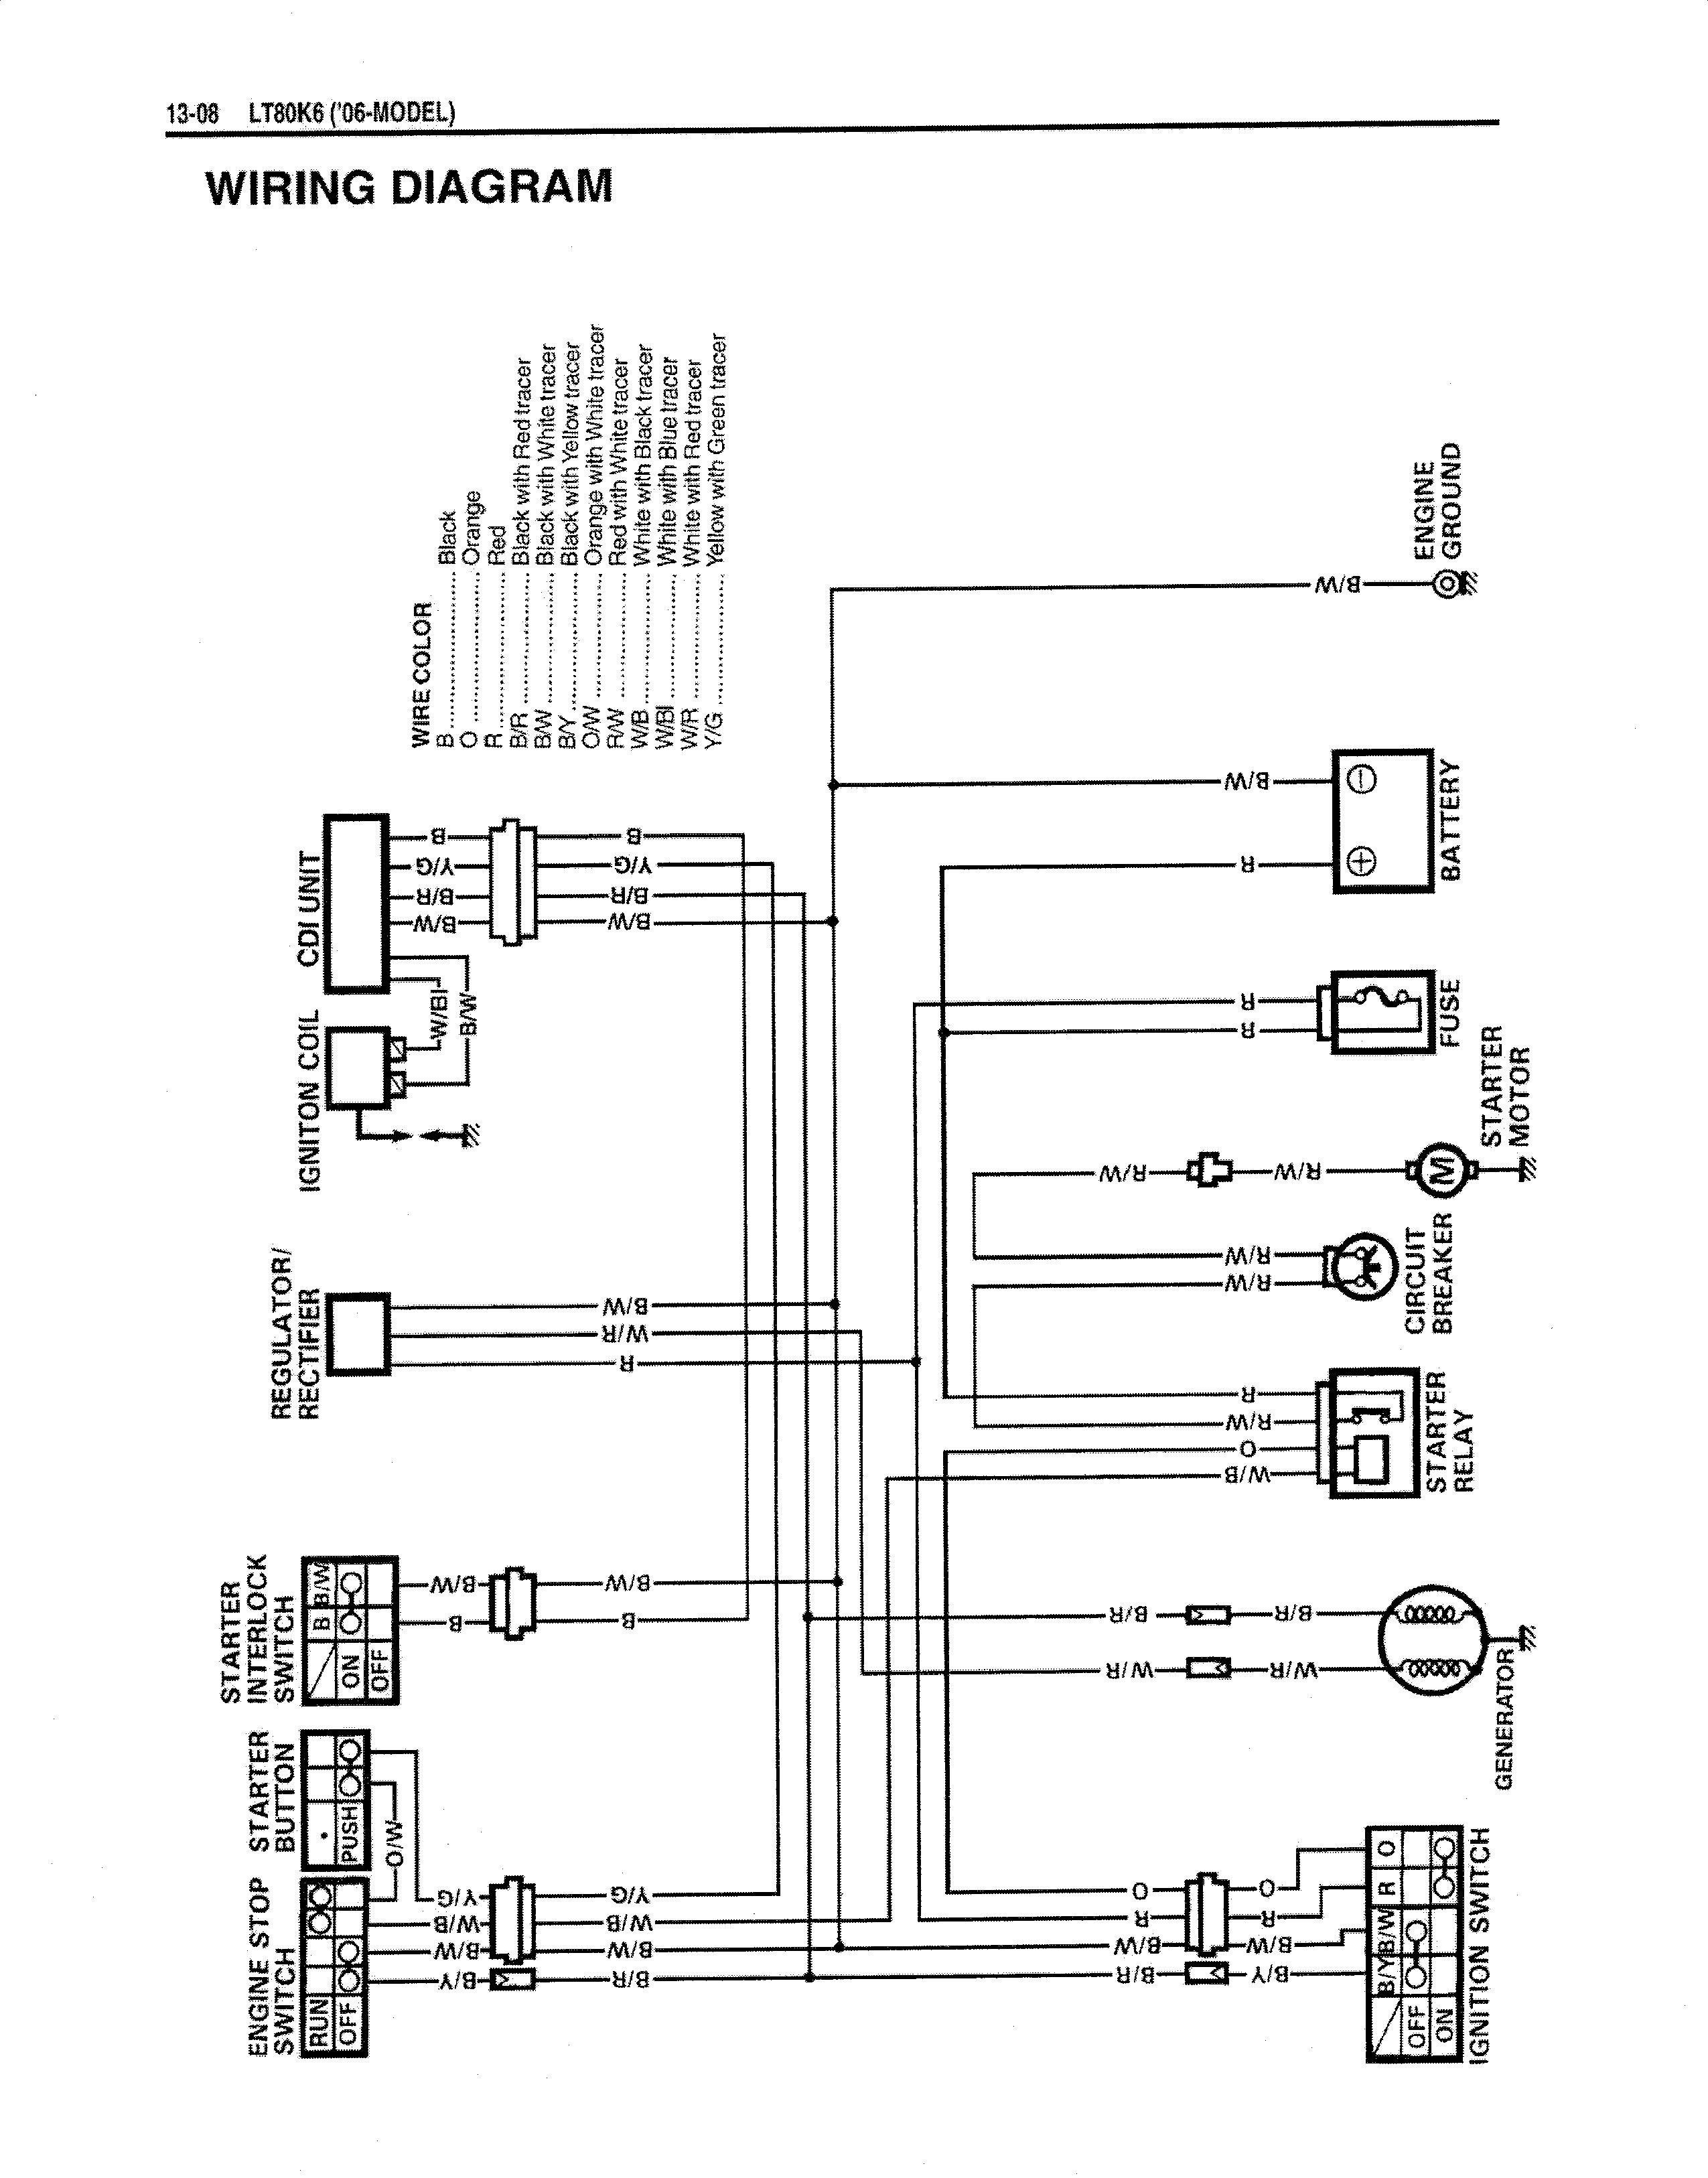 Fresh Wiring Diagram Suzuki Quadrunner #diagrams #digramssample  #diagramimages #wiringdiagramsample #wiringdiagram | Boat wiring, Car  gauges, DiagramPinterest